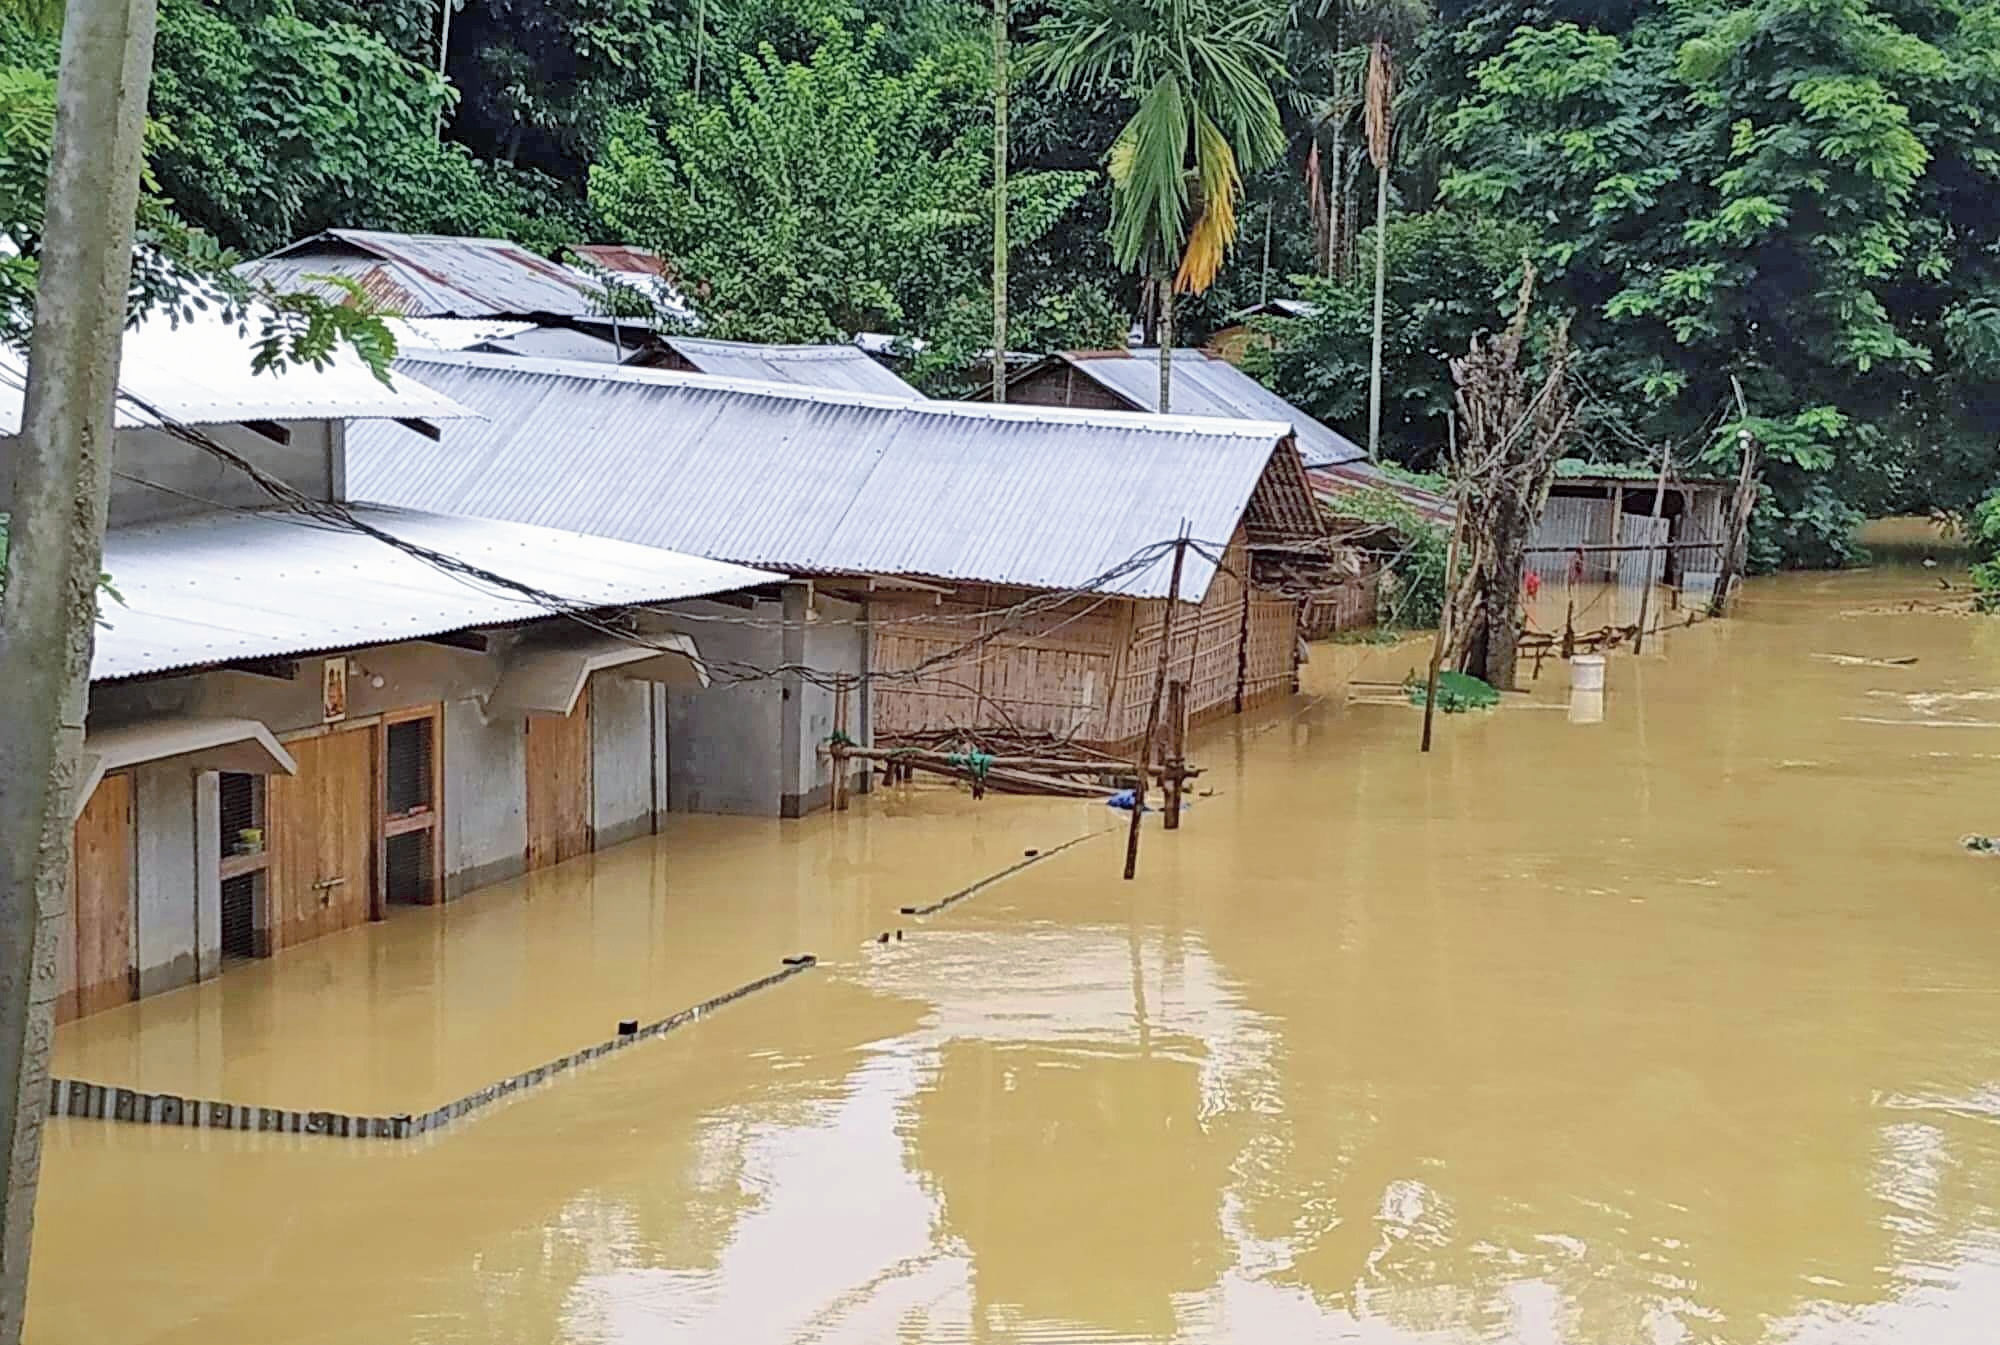 An inundated area in Lumding in Hojai district on Saturday.